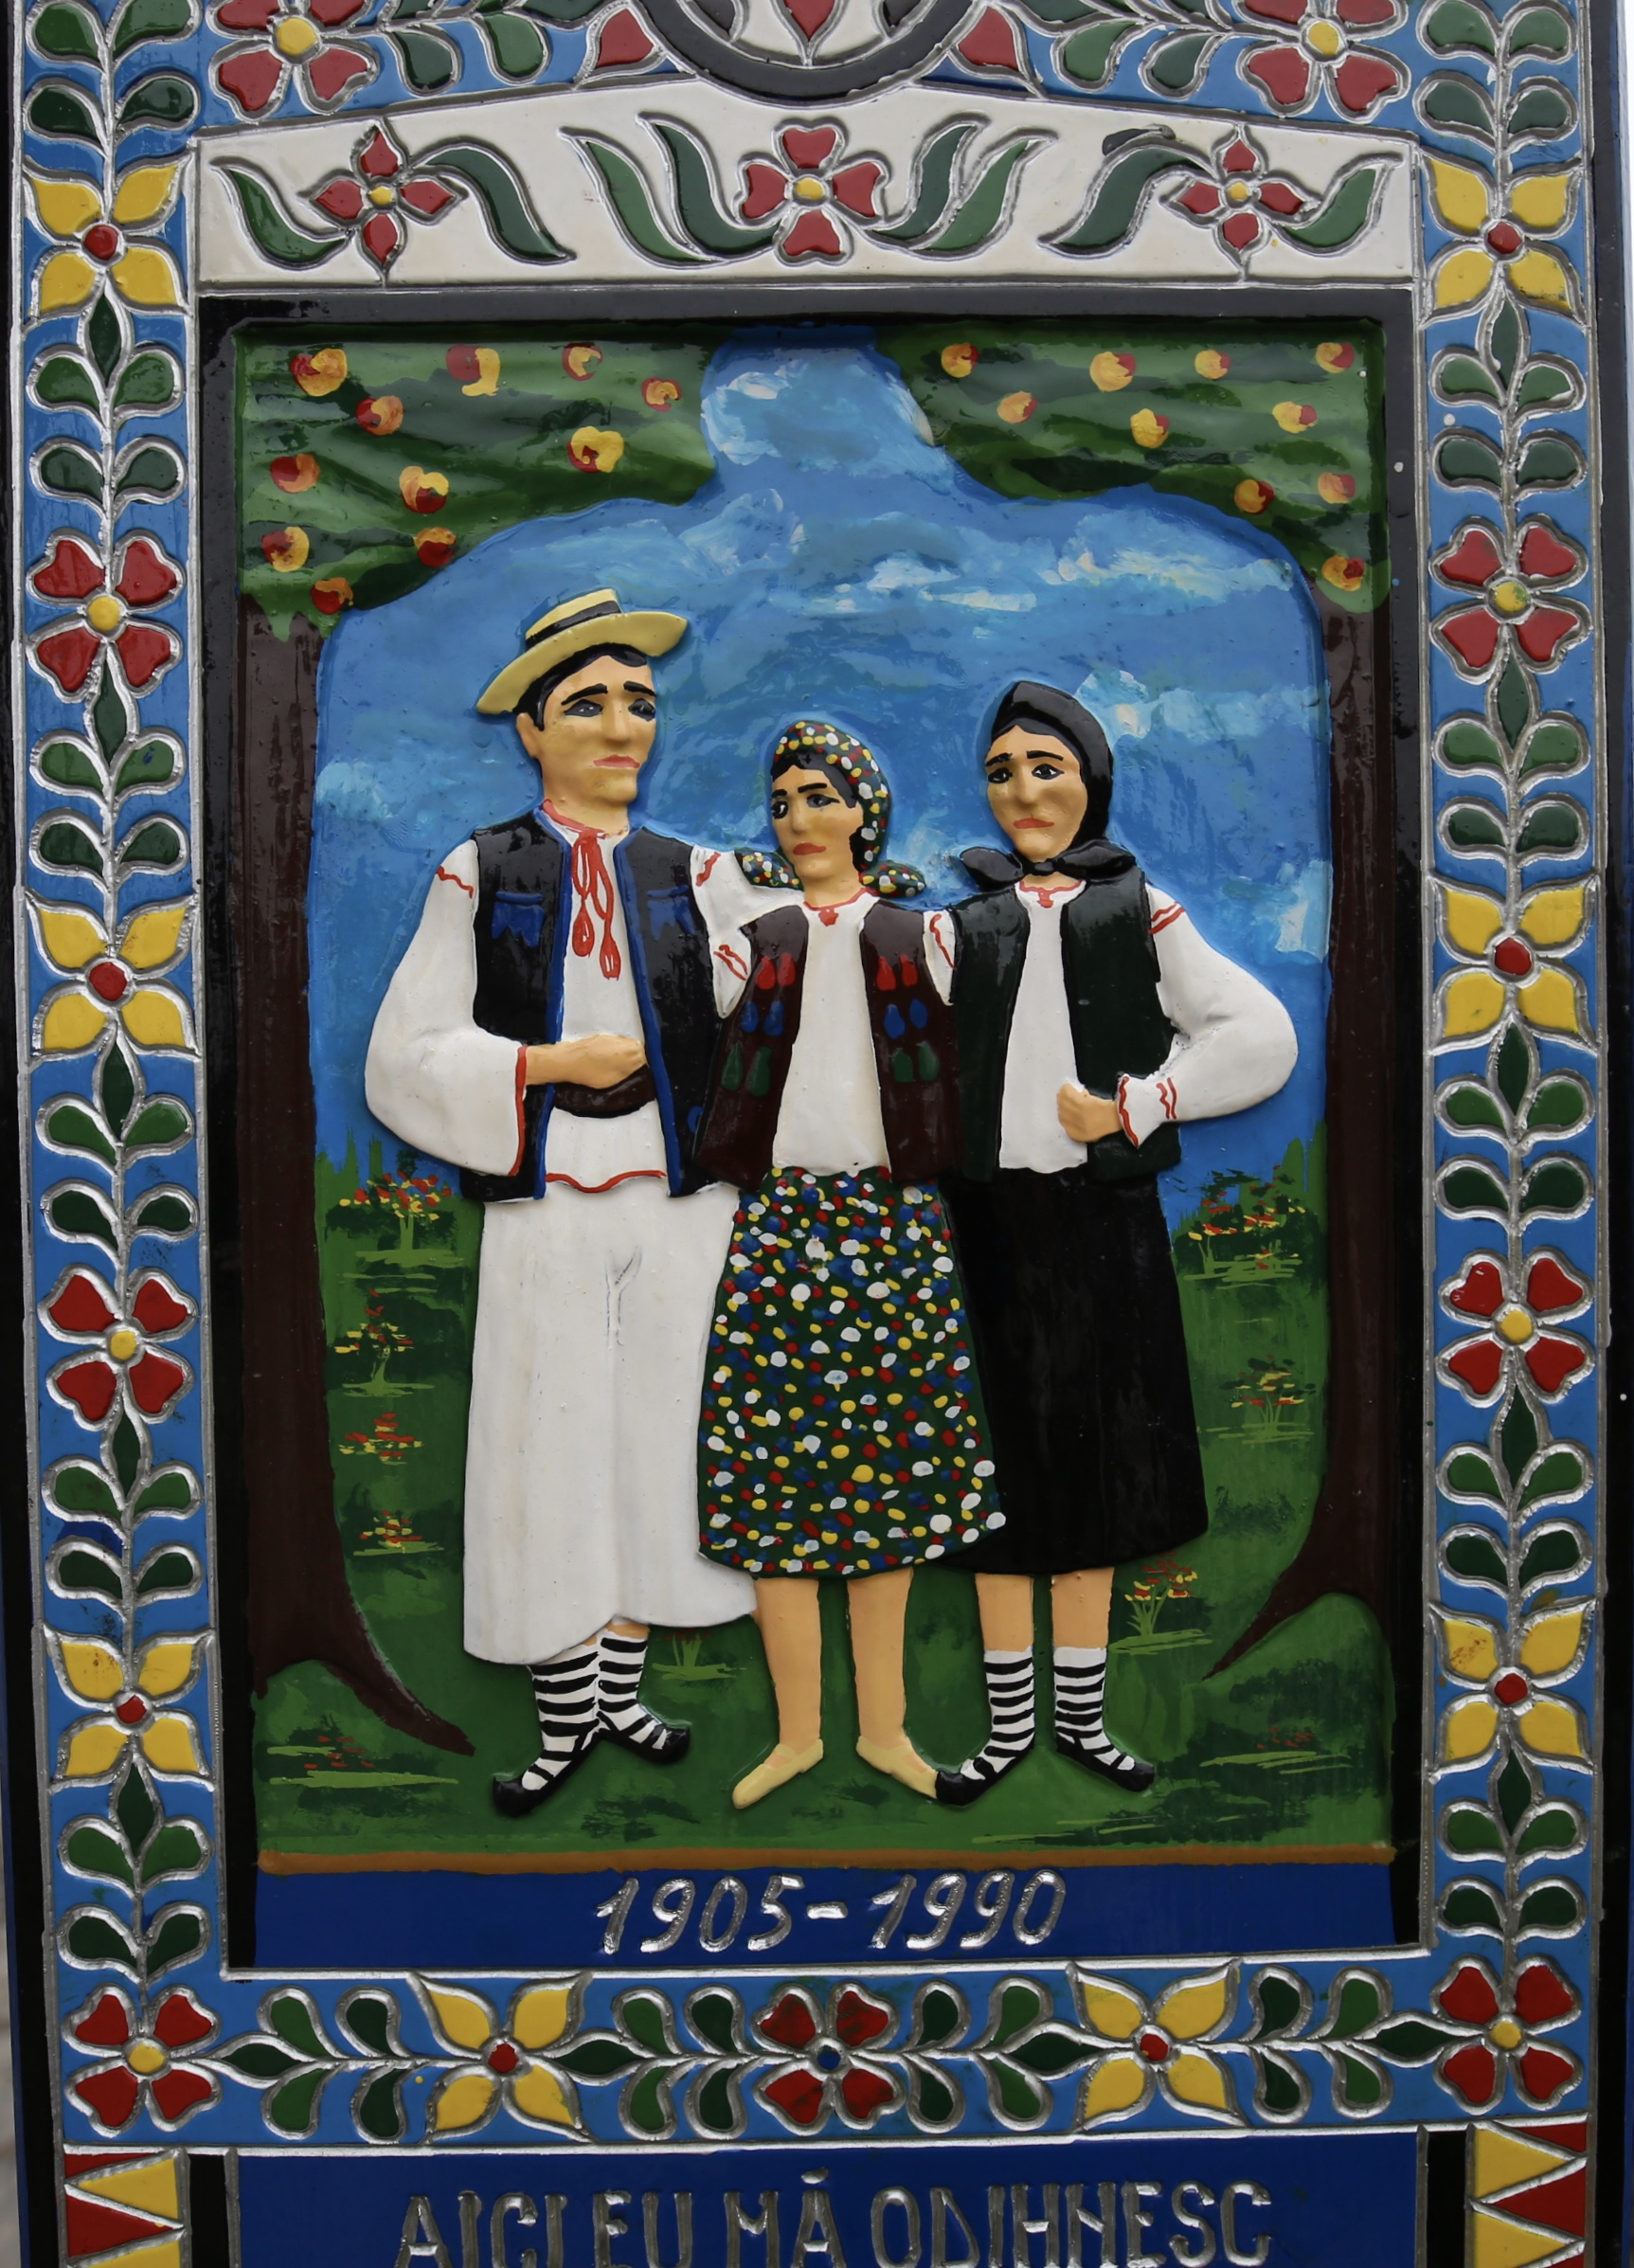 A grave marker in the Merry Cemetery - showing a colourful painting of a farming family.